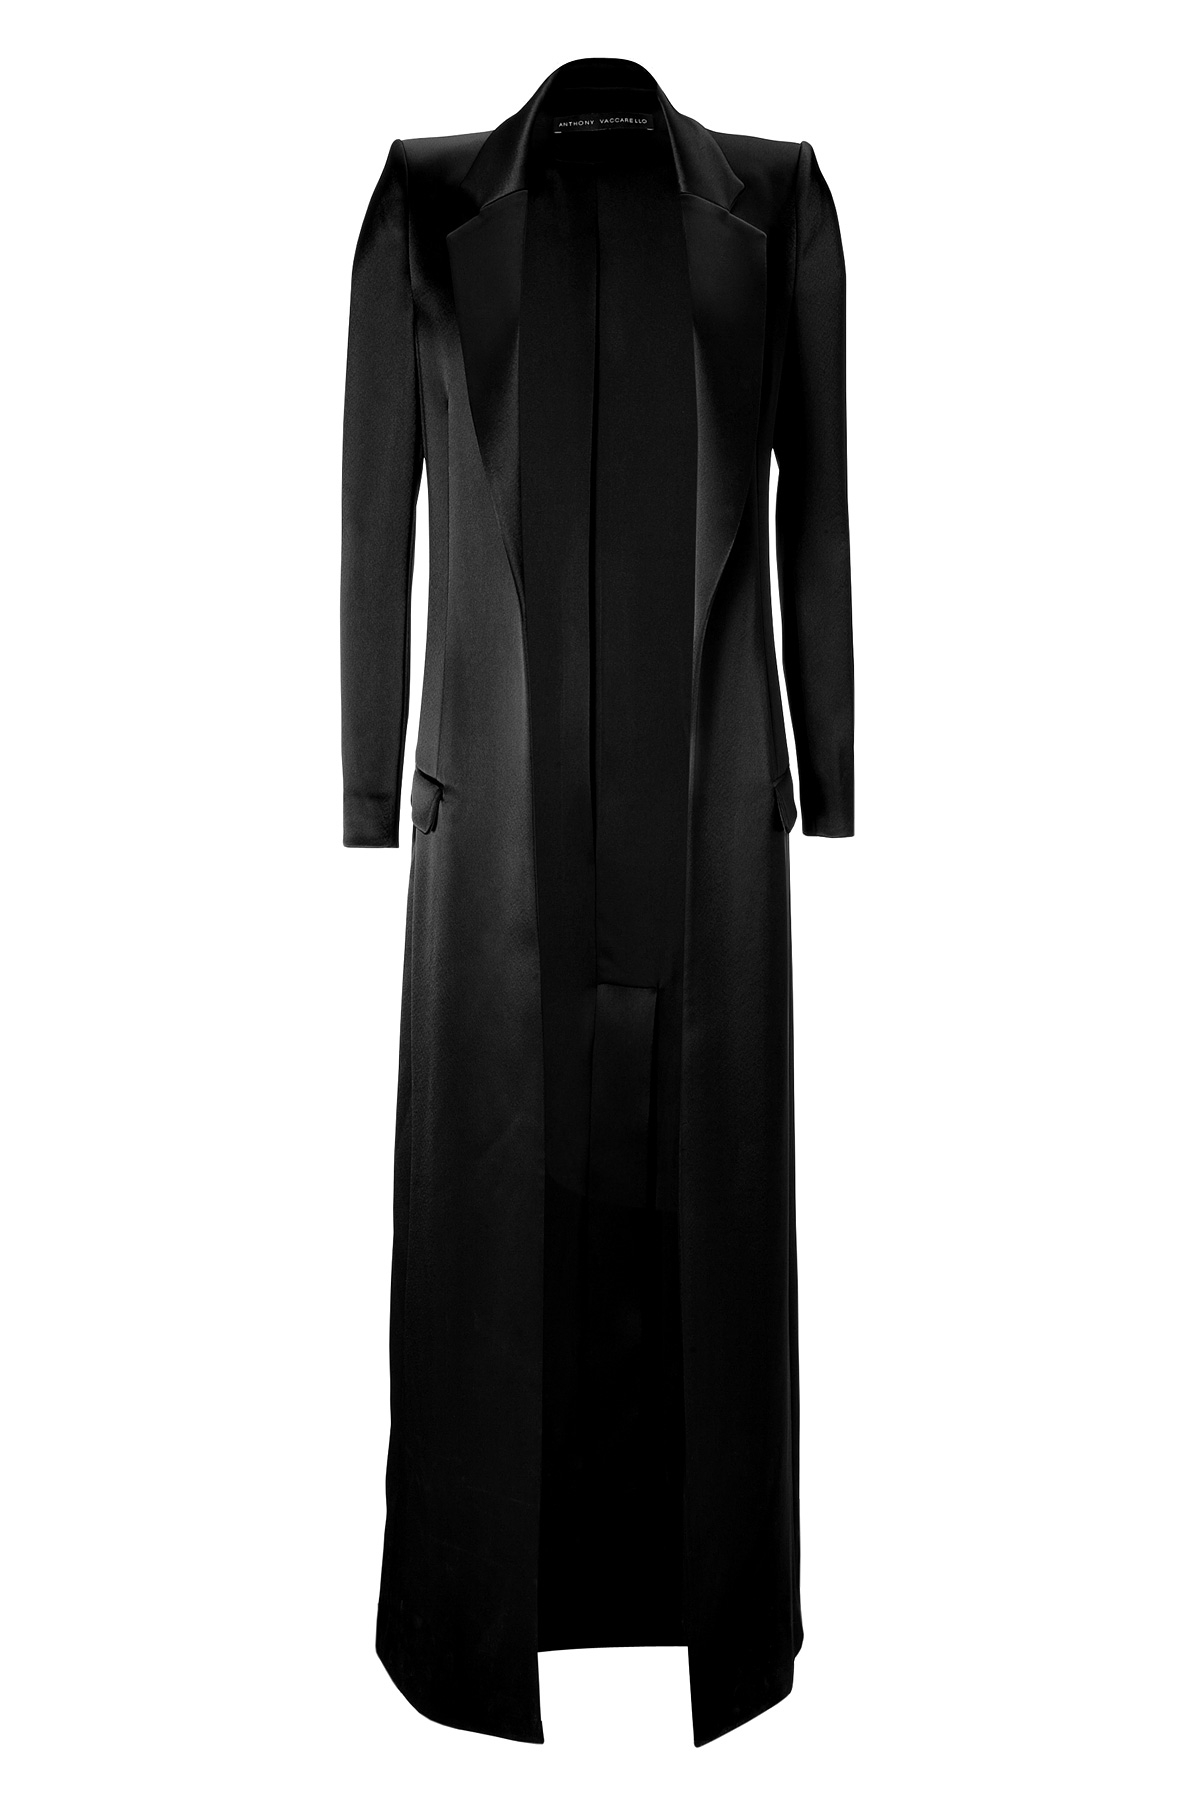 Anthony Vaccarello Satin Floor Length Coat   Black In Black | Lyst